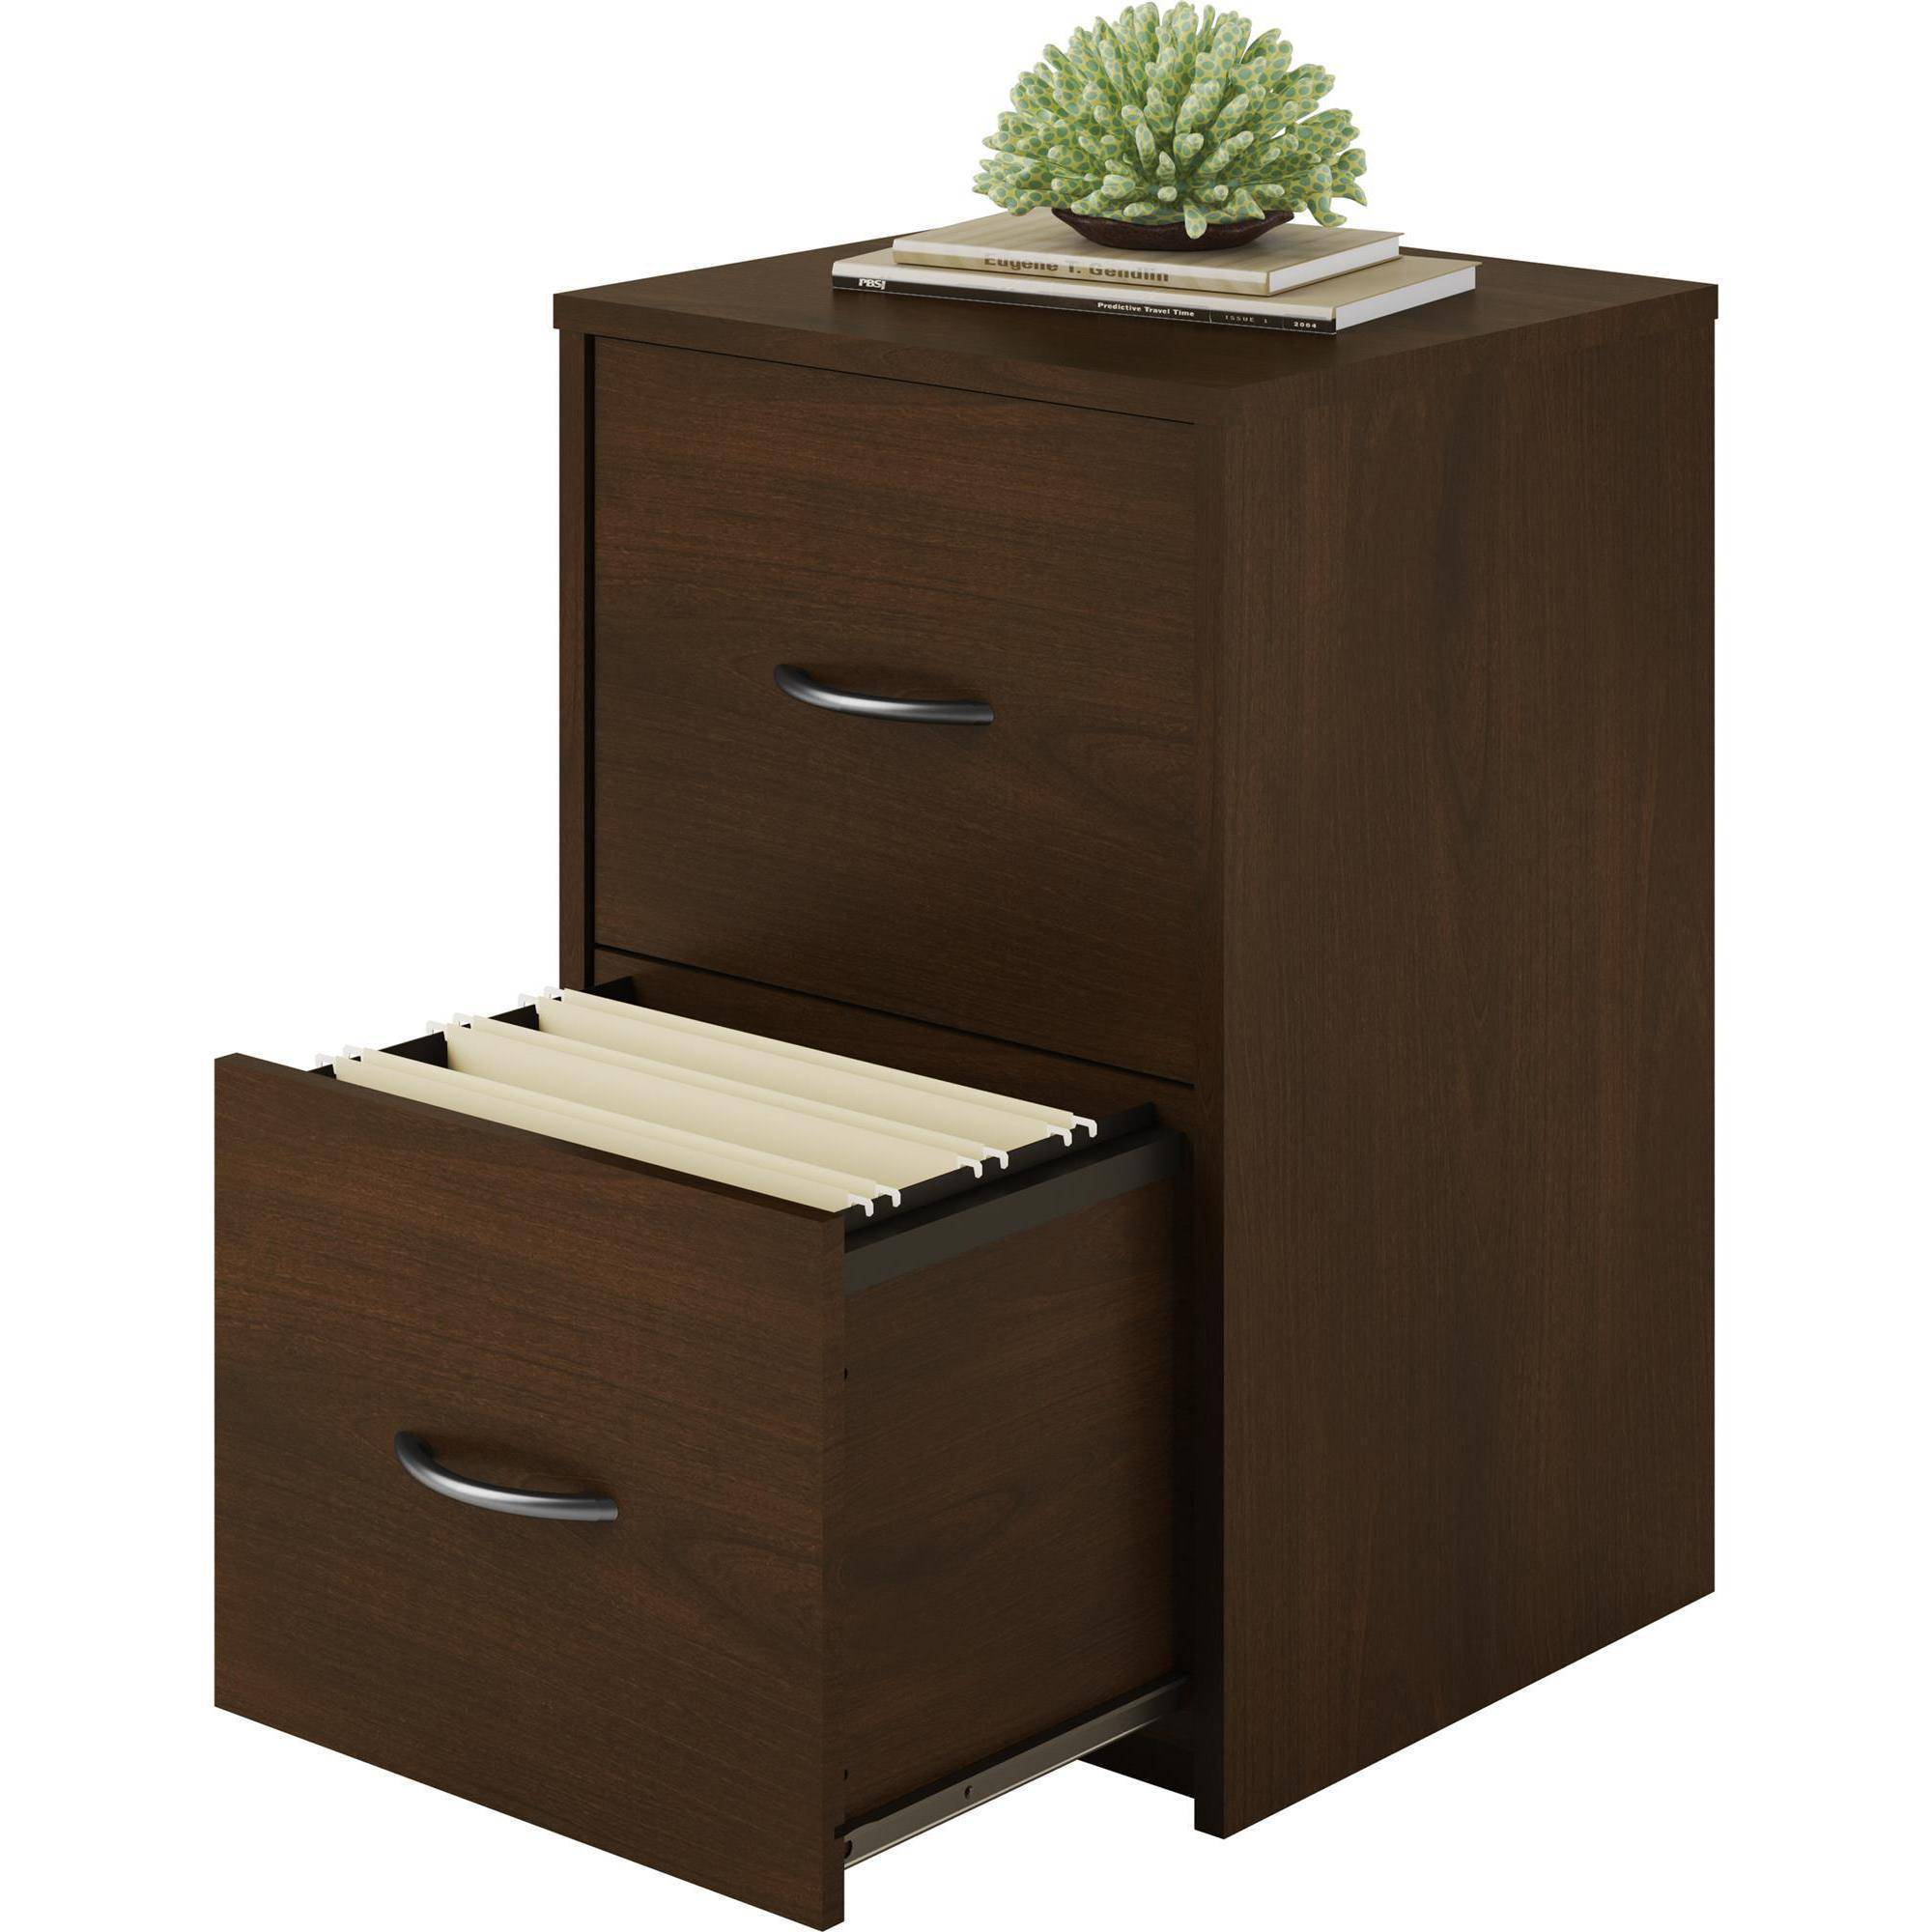 ameriwood home core 2 drawer file cabinet multiple colors walmart com rh walmart com  walmart wooden filing cabinets